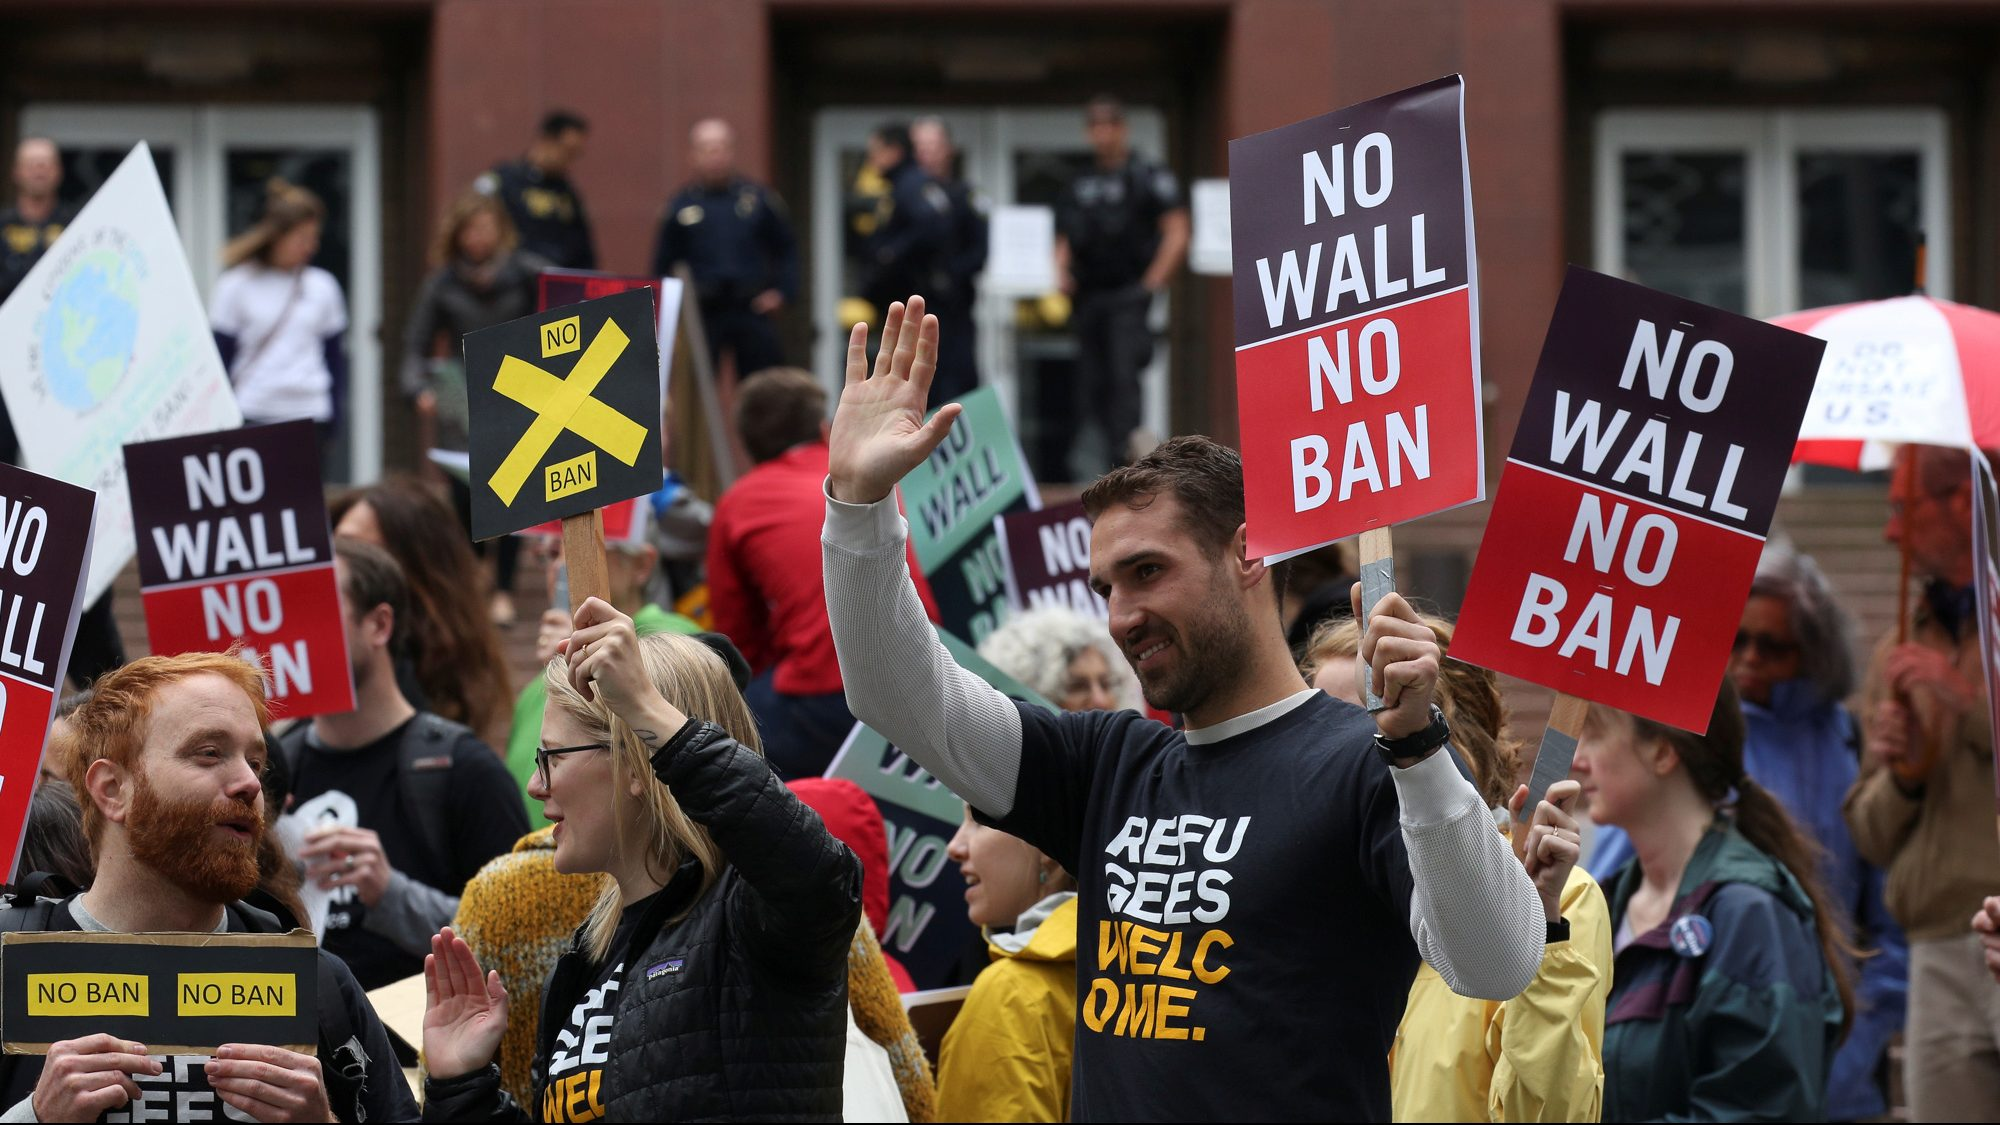 People protest U.S. President Donald Trump's travel ban